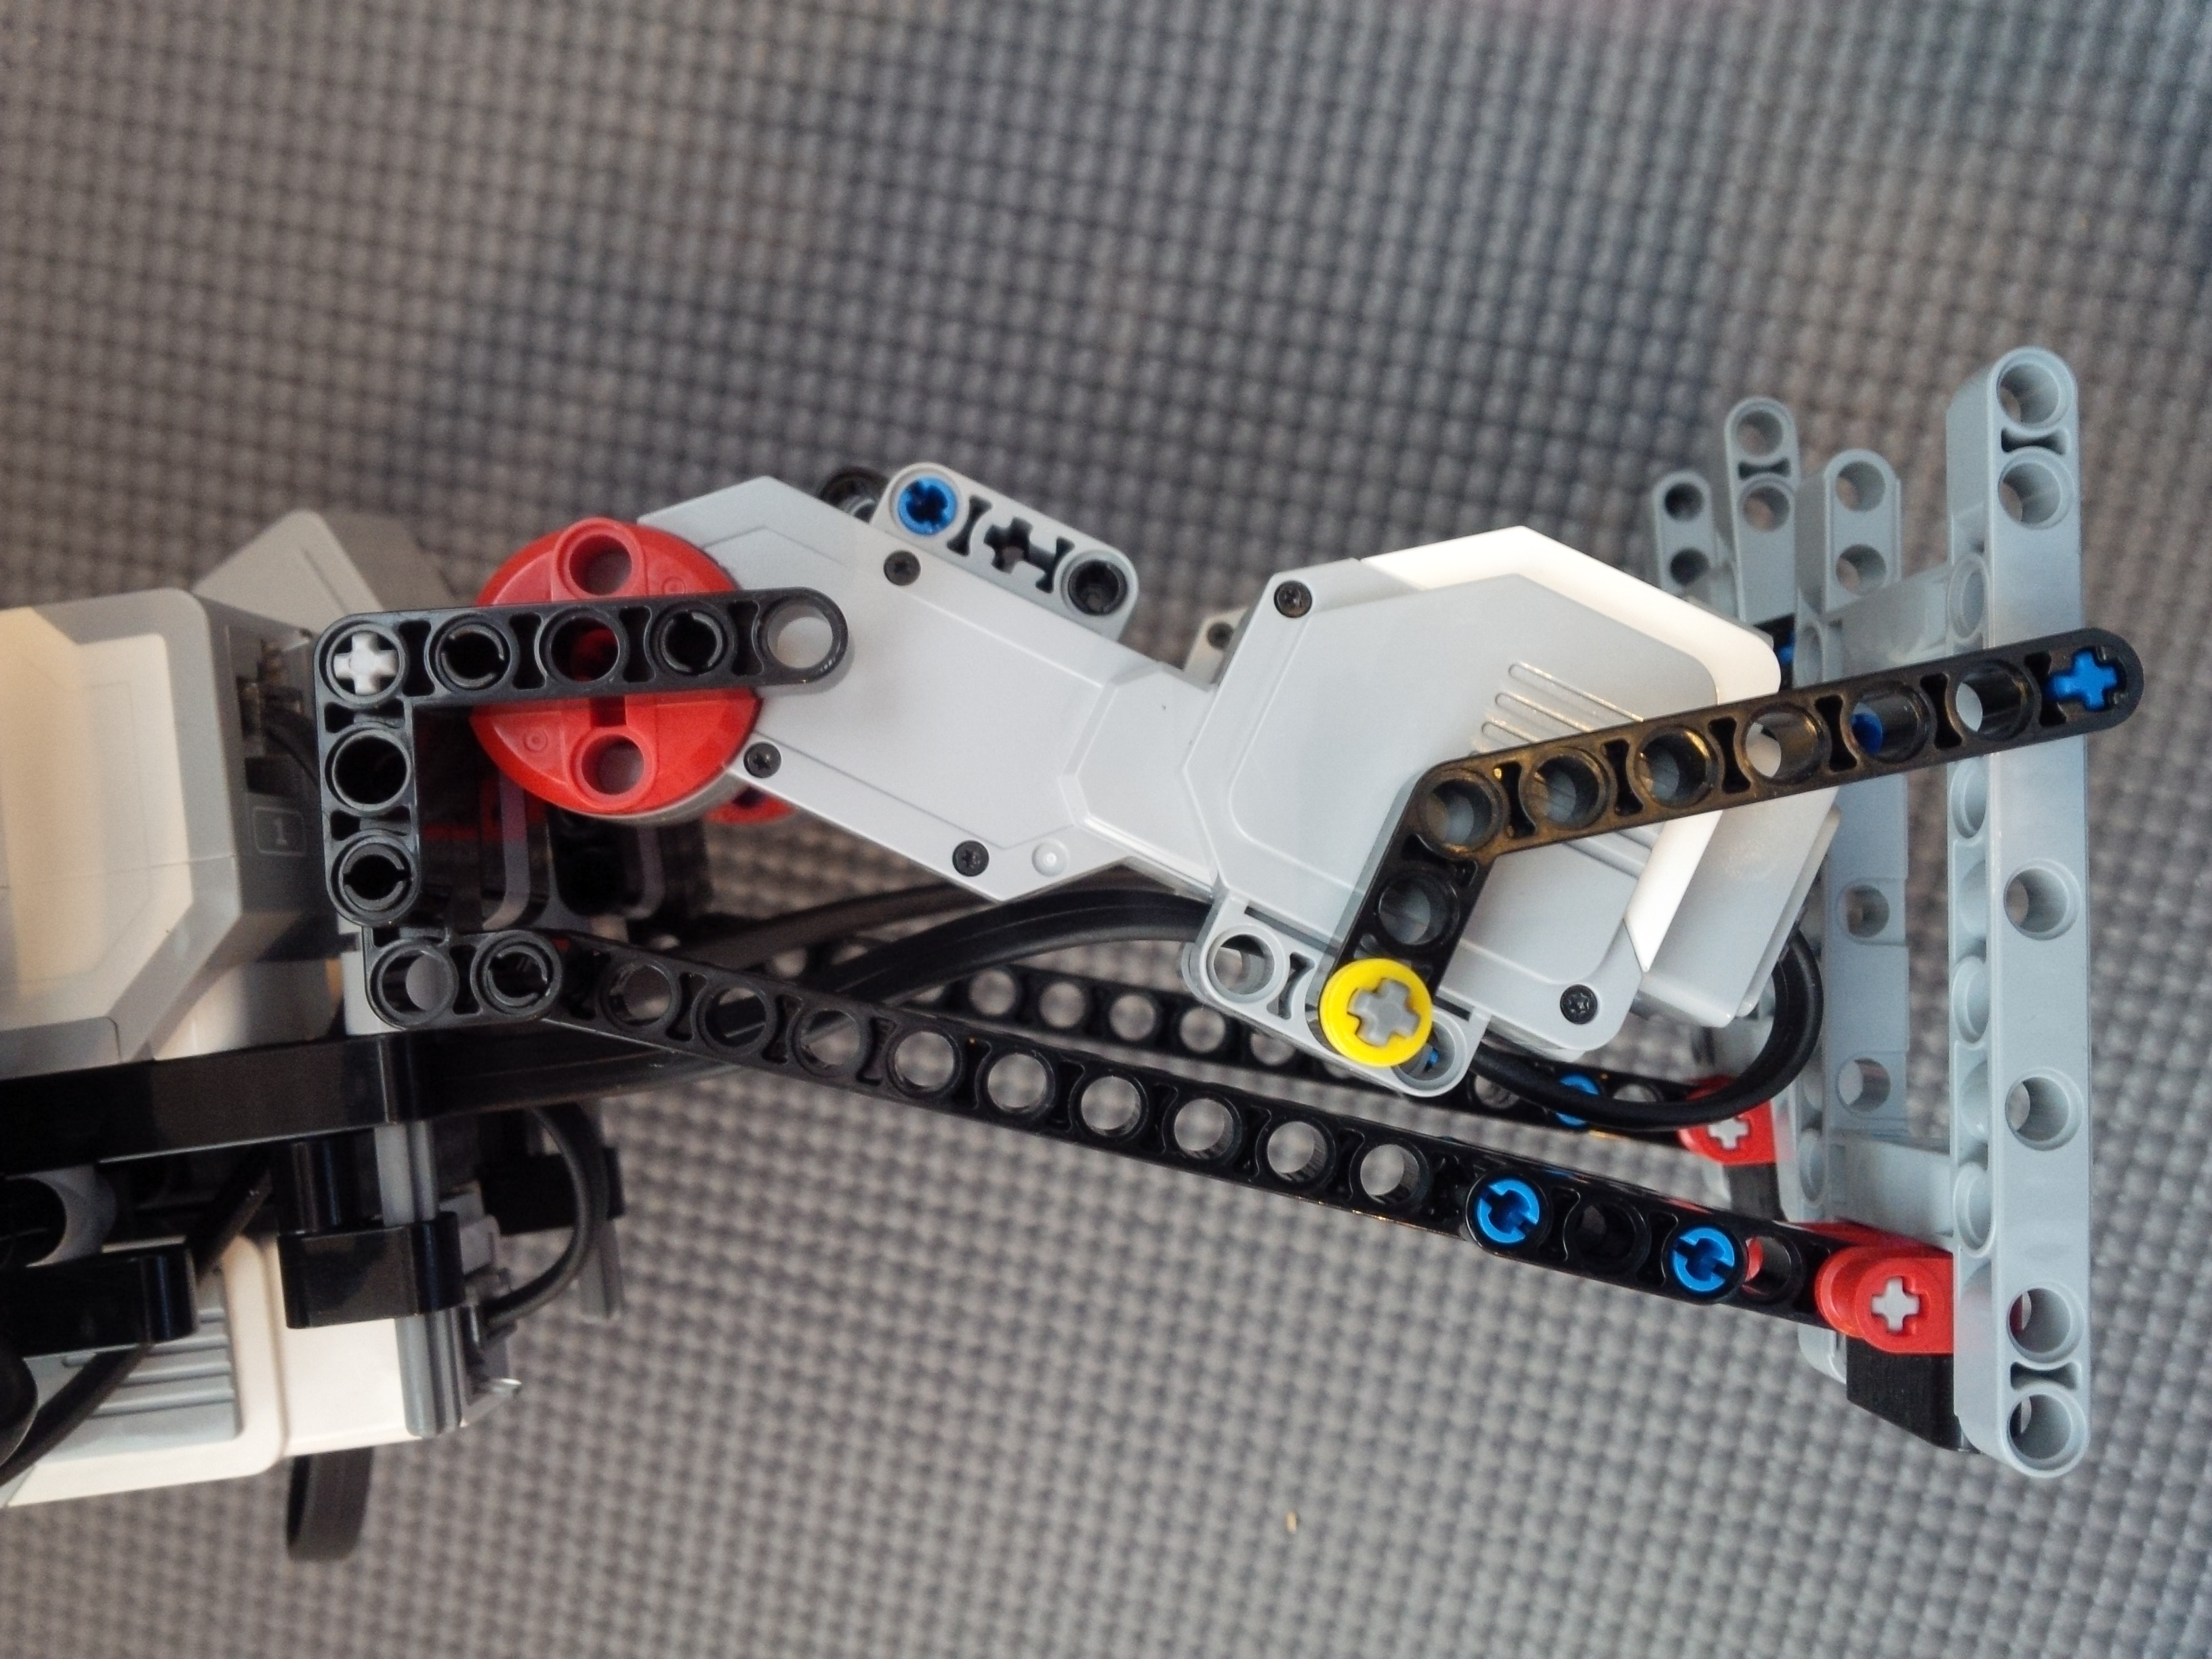 Outer leg view of Lego Mindstorms Dancing Robot